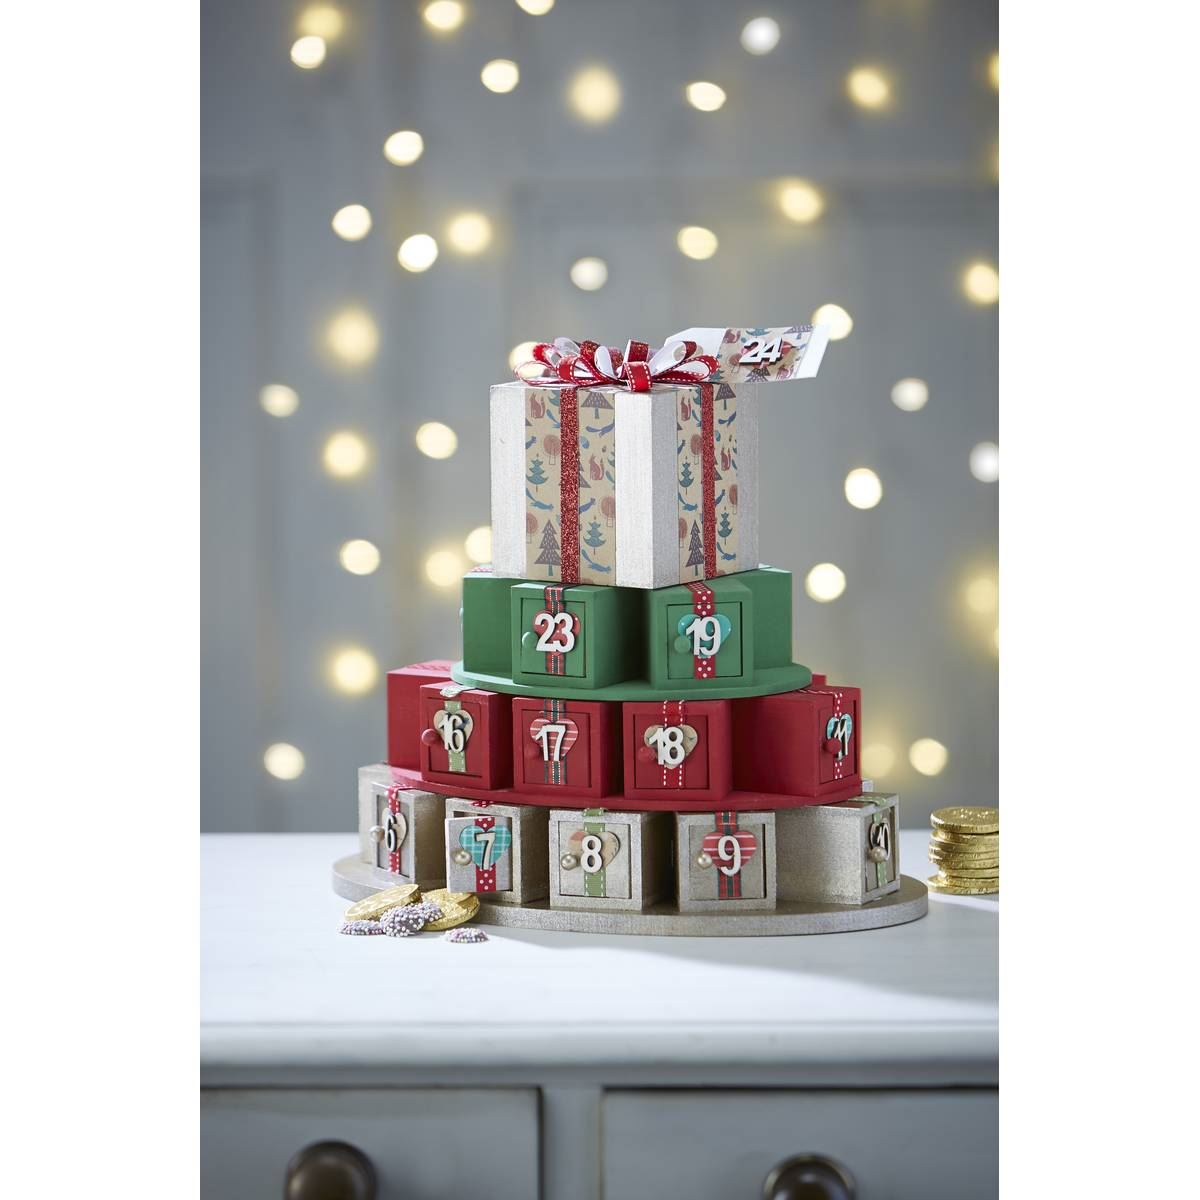 Hobbycraft wooden advent calendar present stack decorate How to build a wooden advent calendar